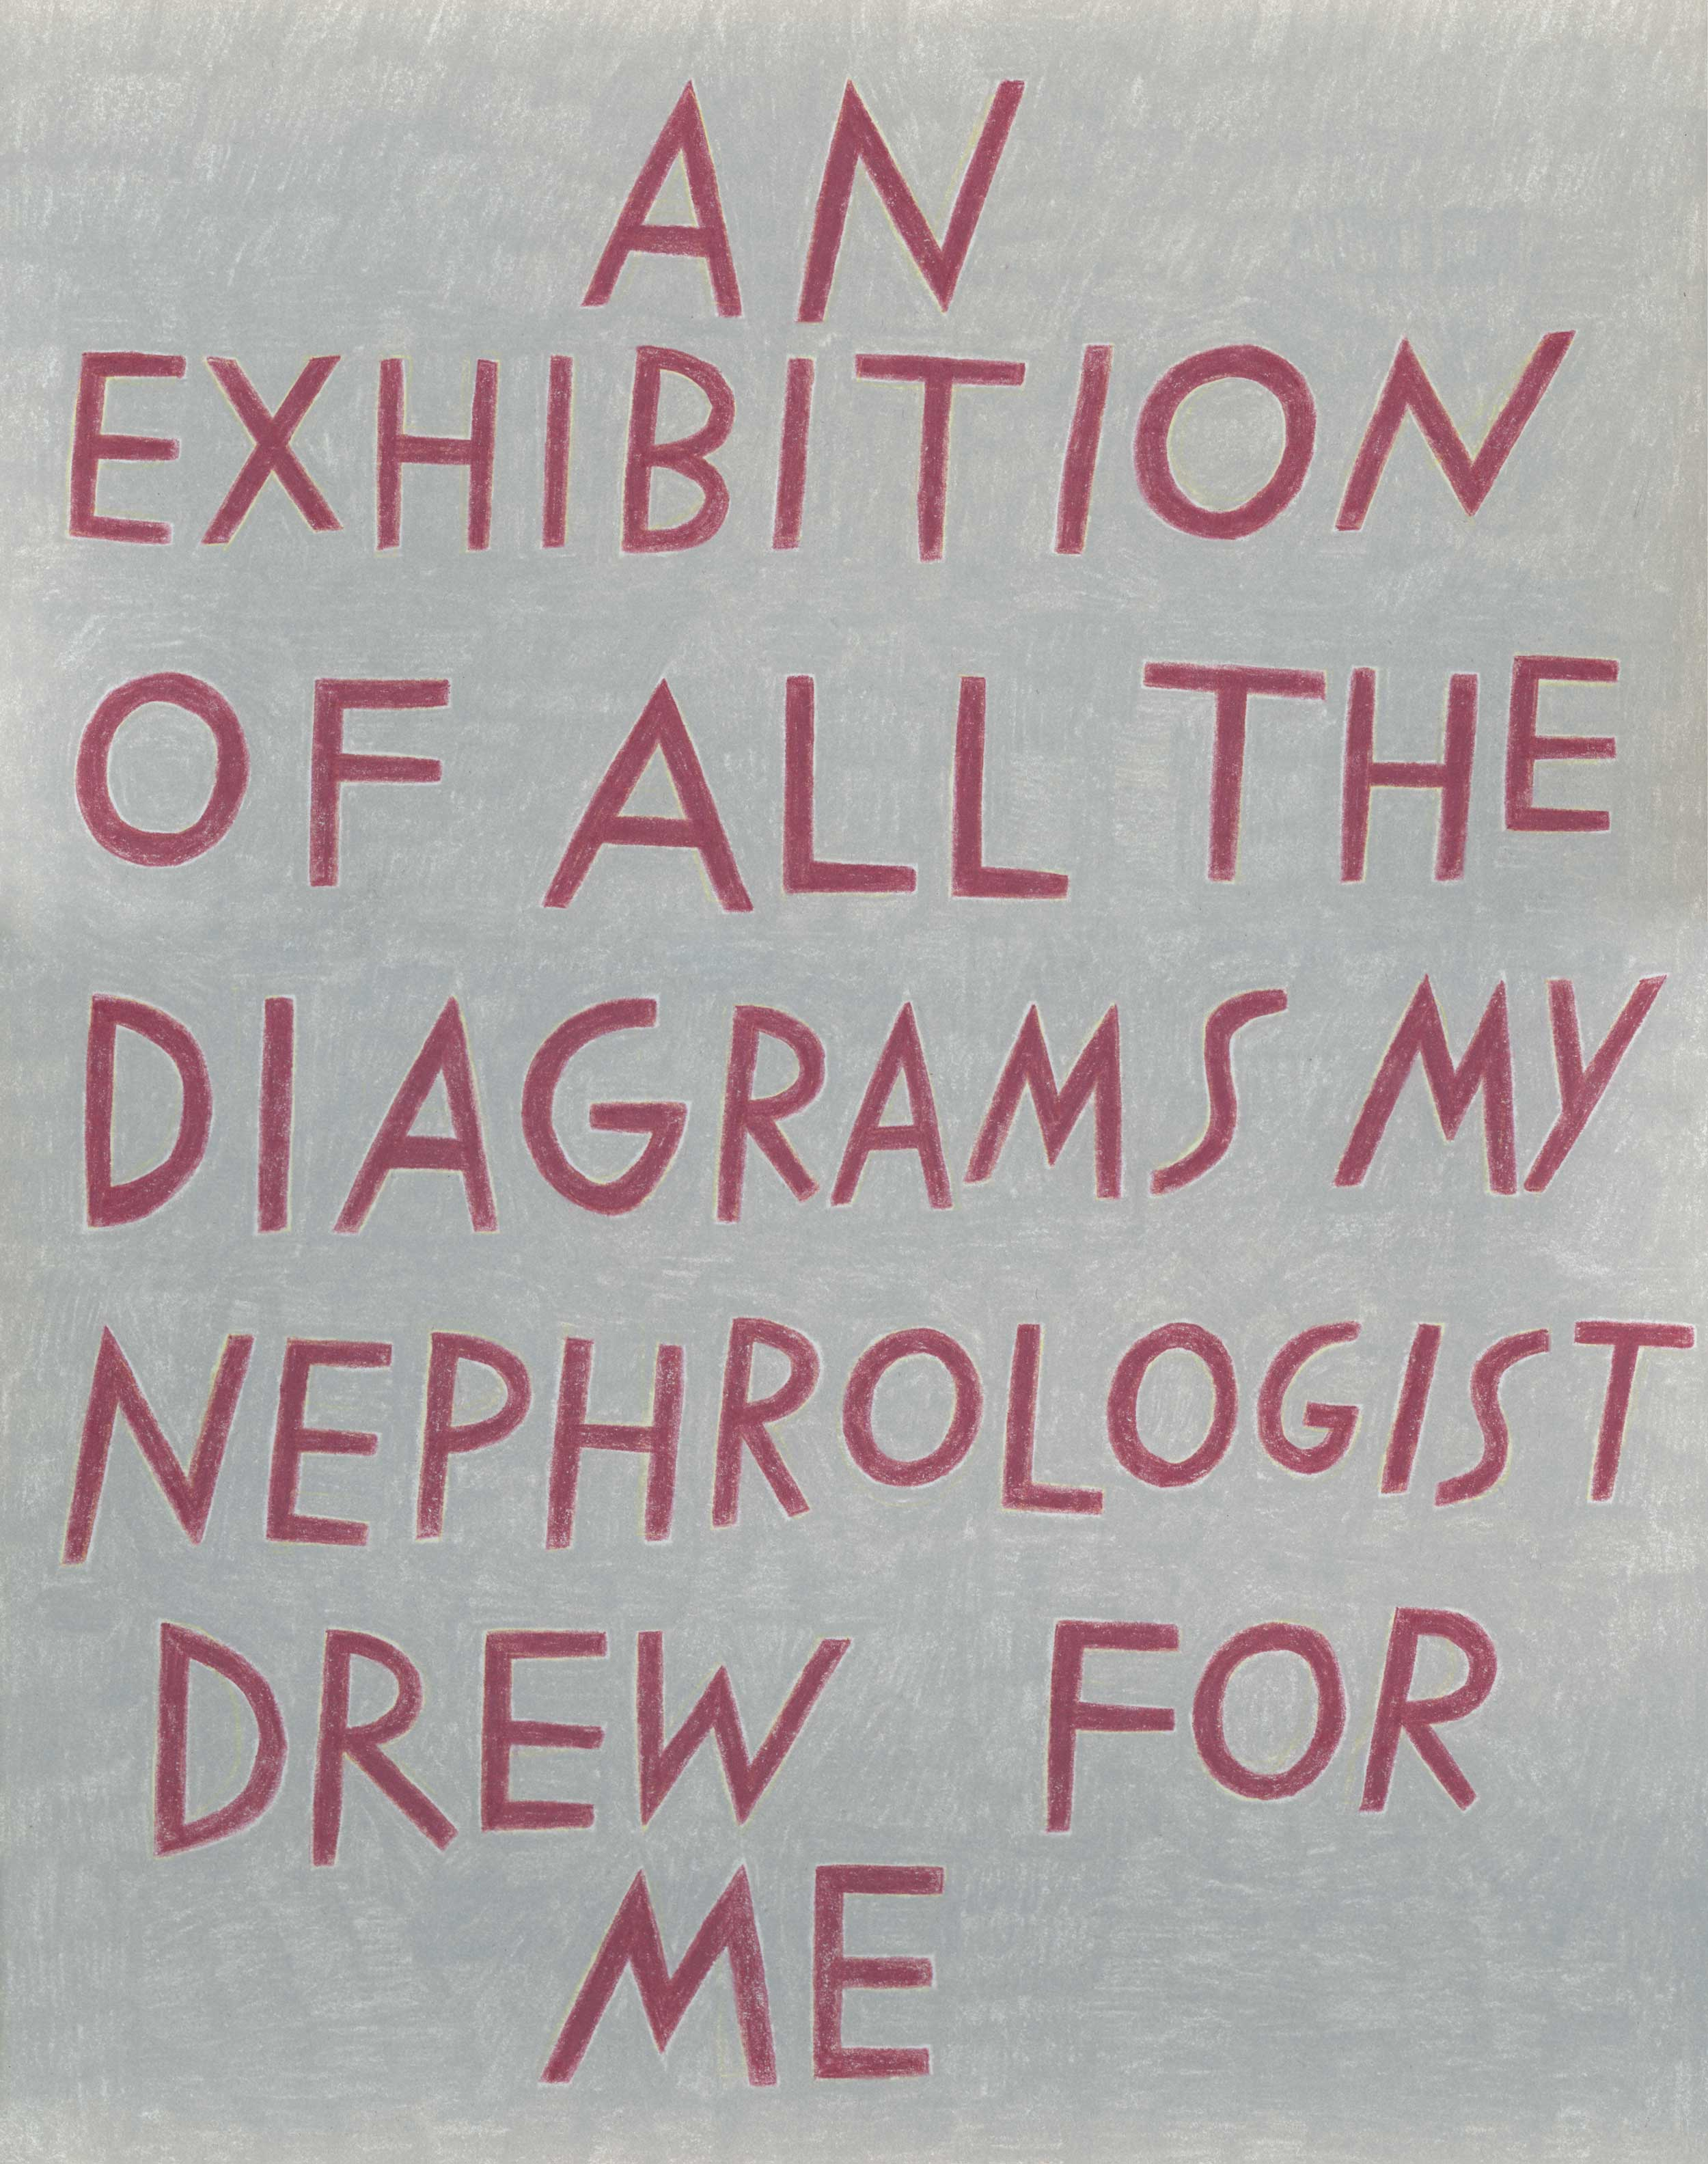 """""""An exhibition of all the diagrams my nephrologist drew for me,"""" in burgundy on gray."""